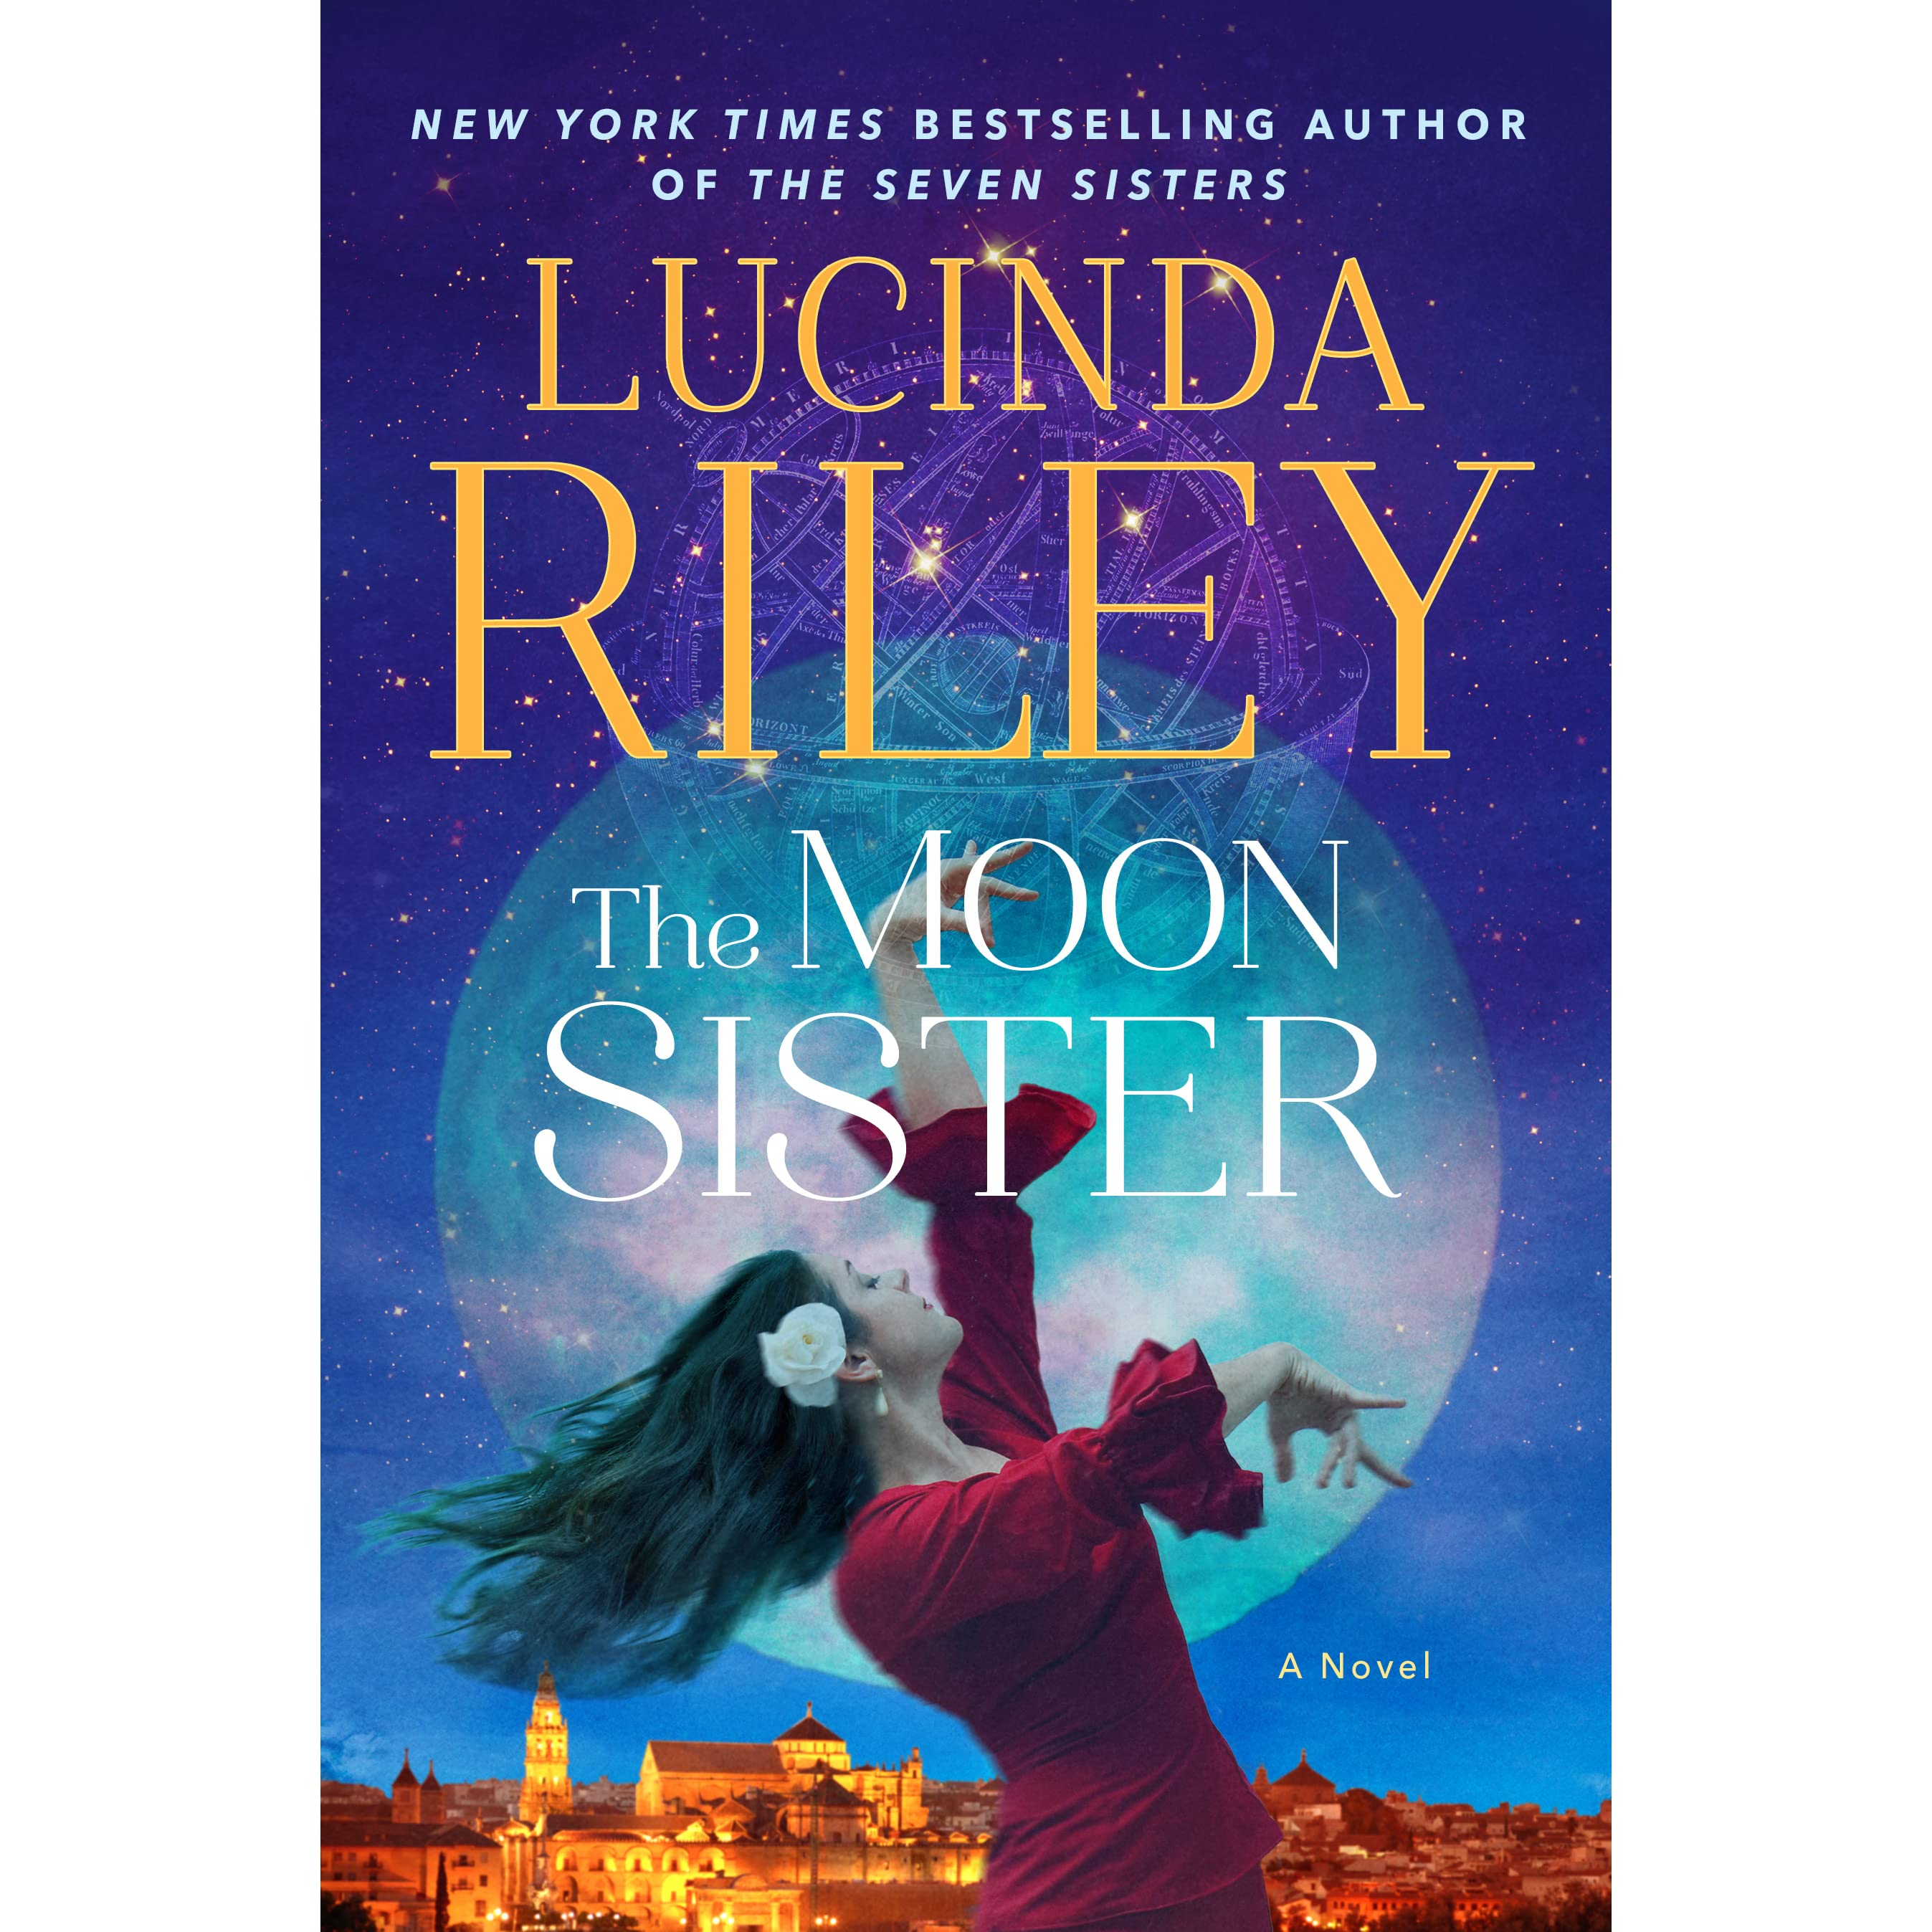 The Moon Sister (The Seven Sisters, #5) by Lucinda Riley